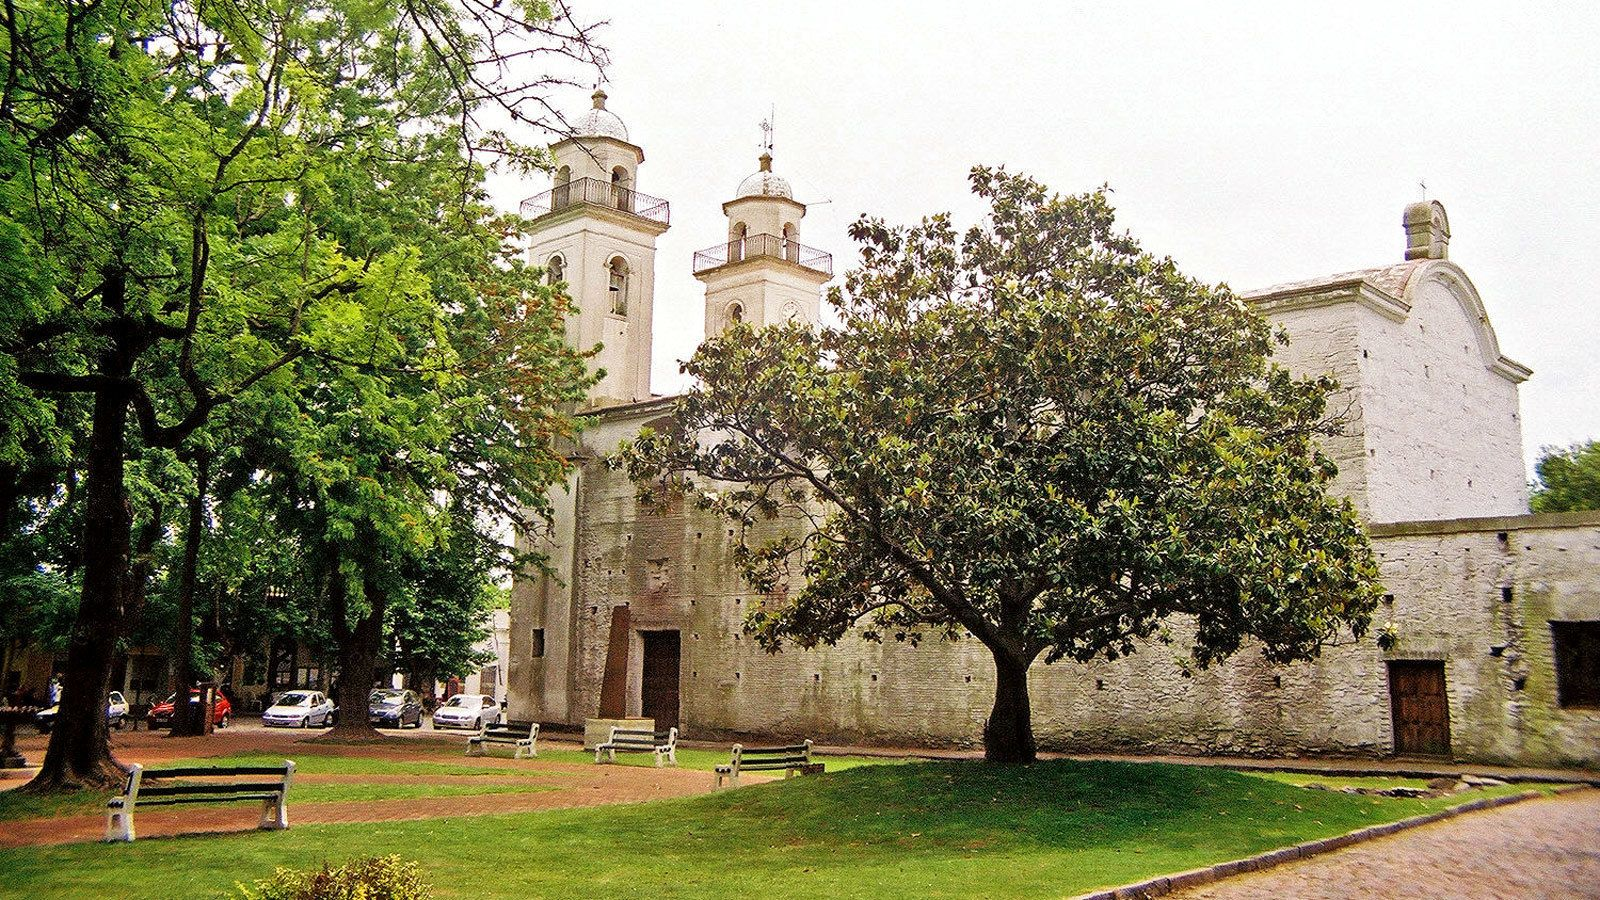 visiting an old church in Argentina